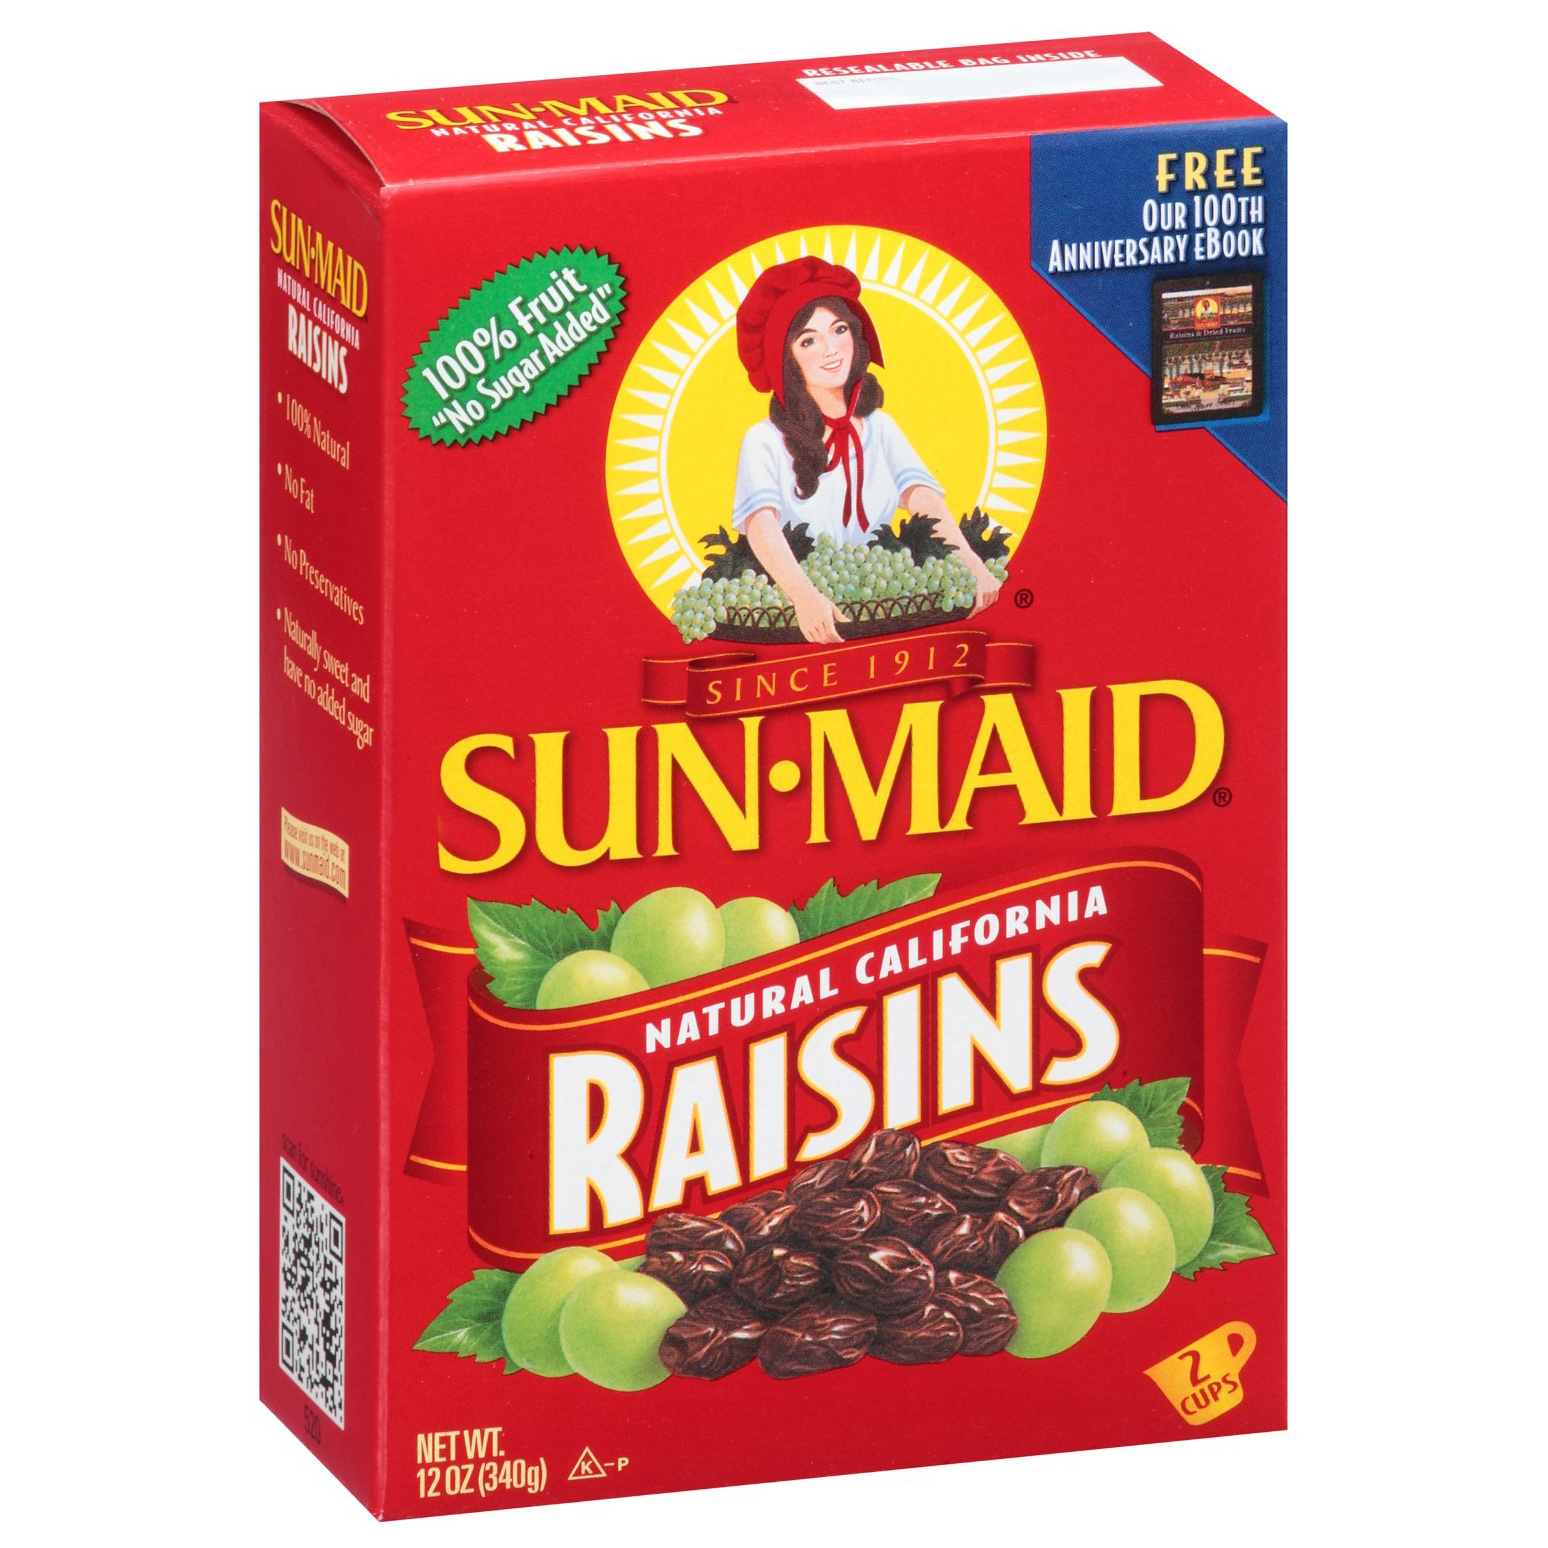 Sun-Maid Raisins